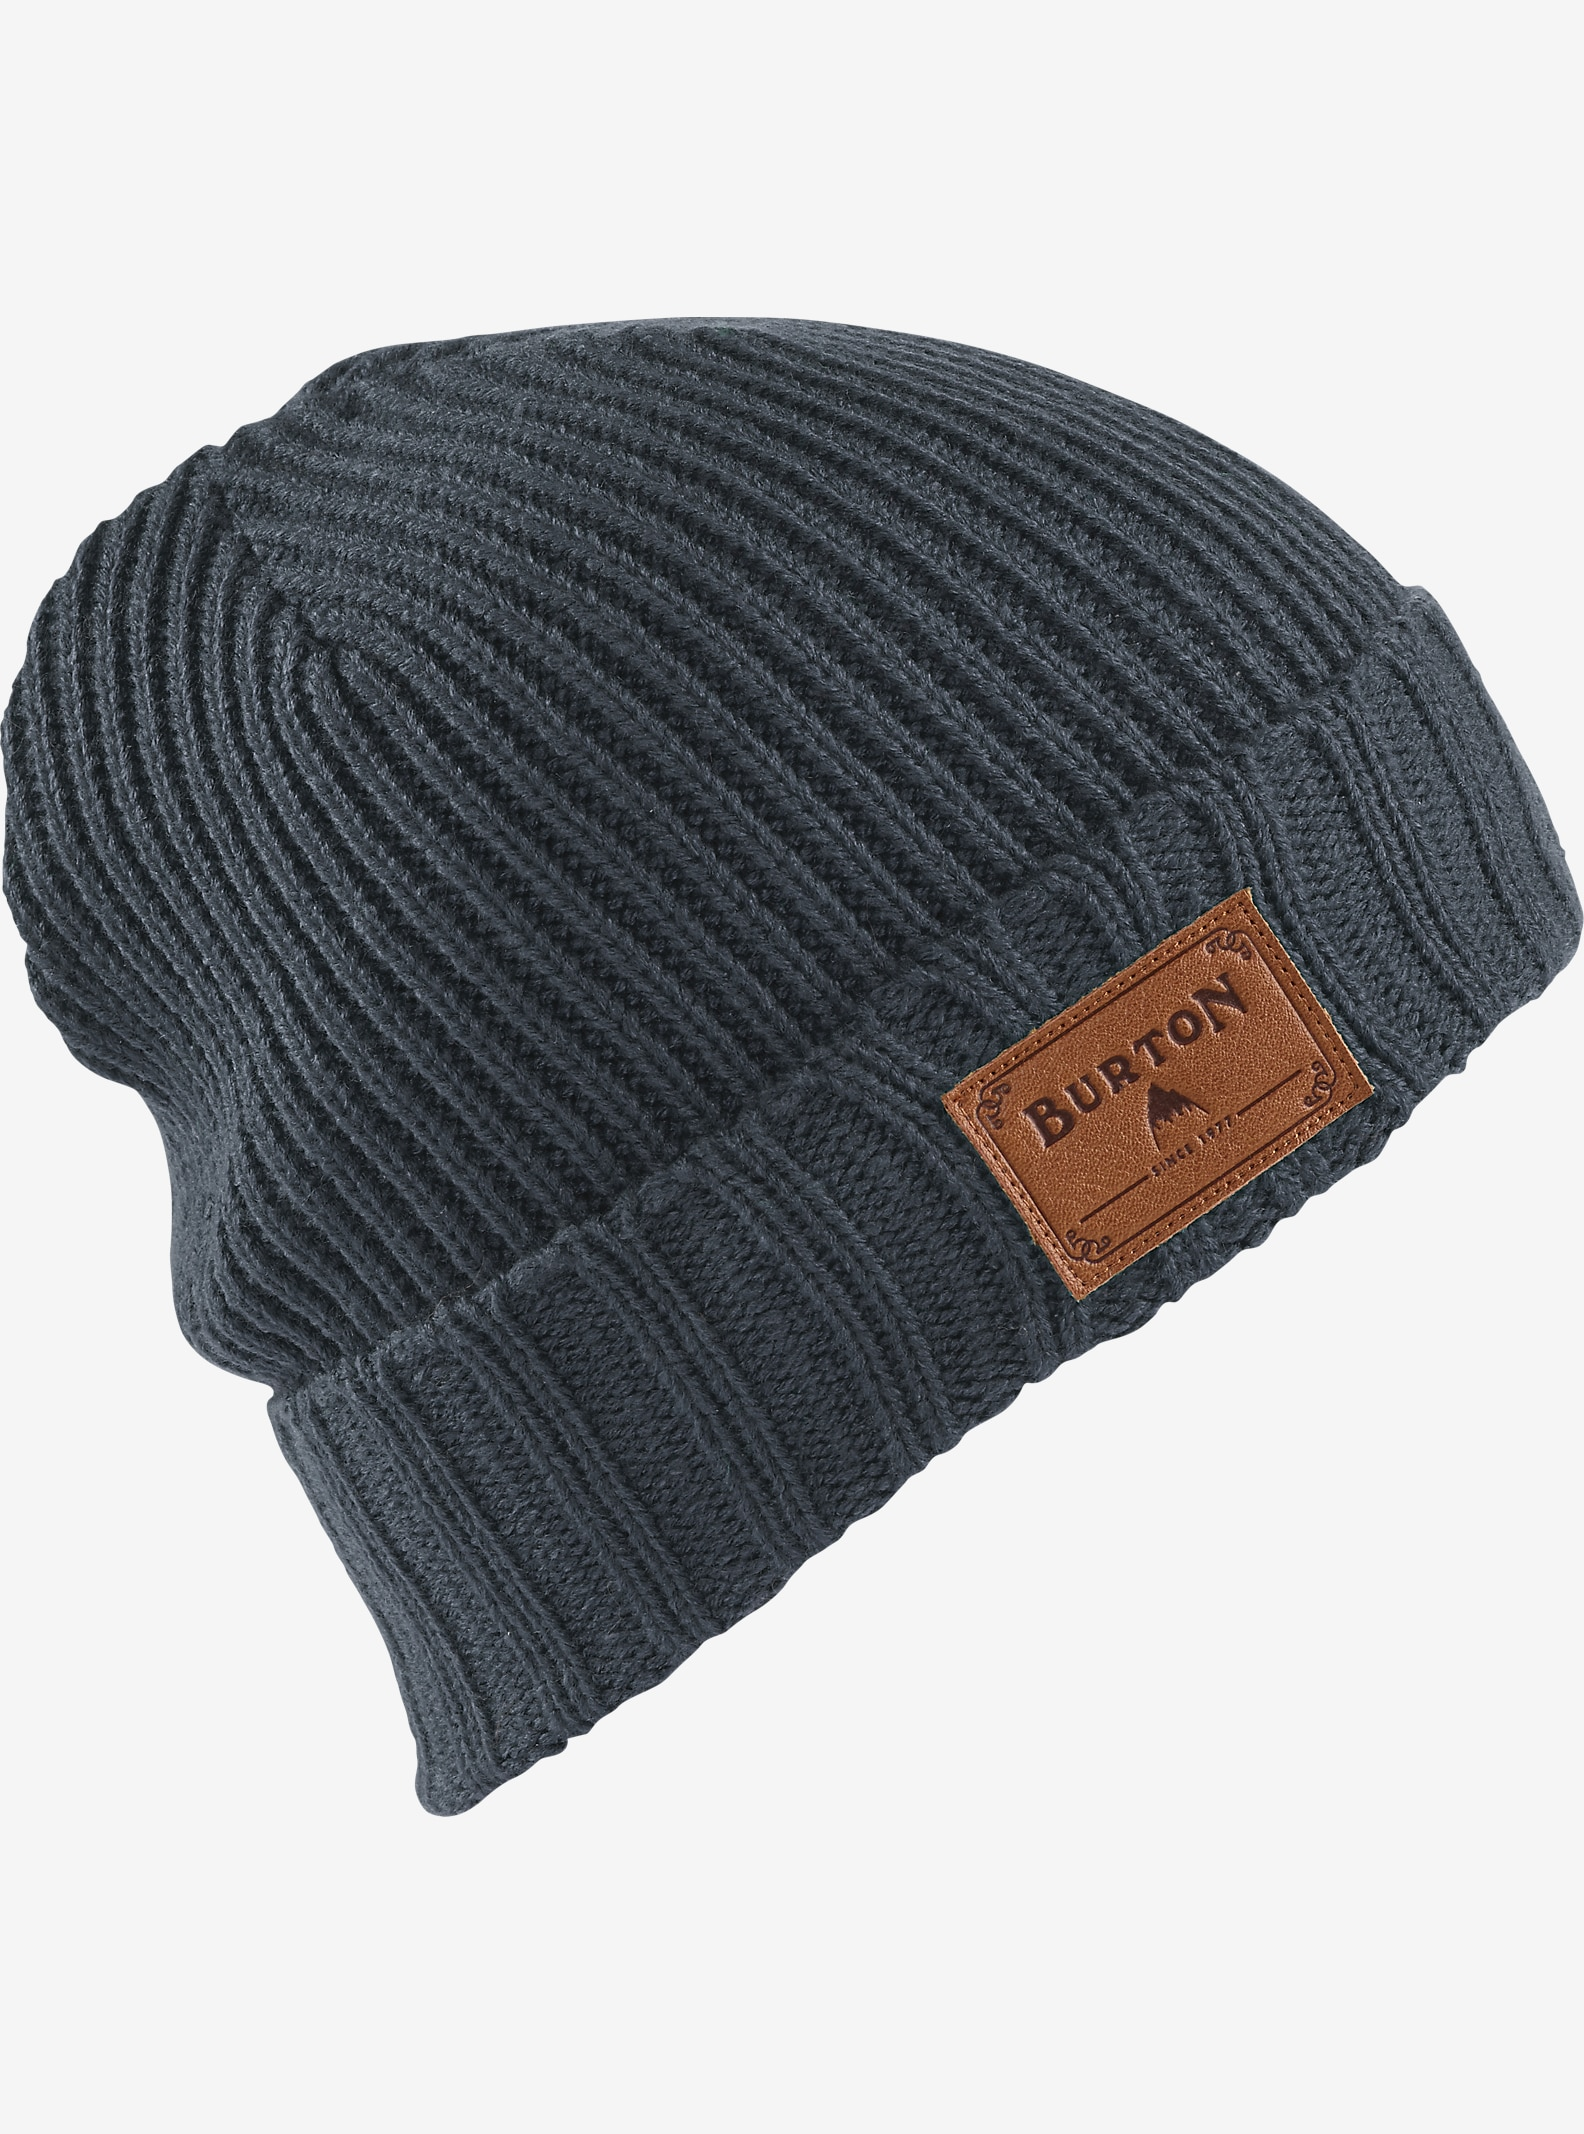 Burton Gringo Beanie shown in Washed Blue